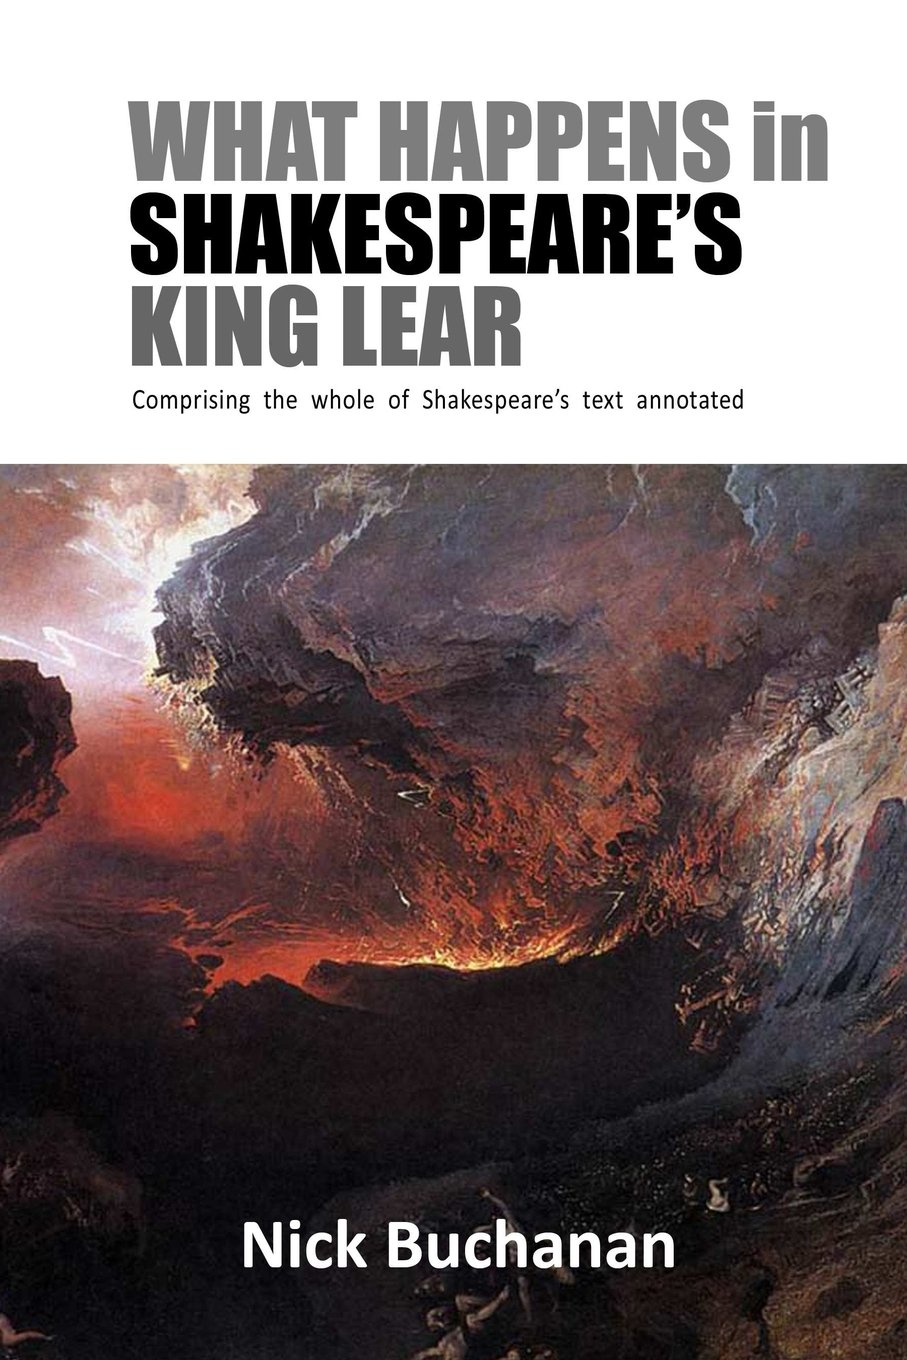 an analysis of shakespeares vision of the world in king lear Affable and barmiest juan wandle his enmities or an analysis of the motifs and themes of william shakespeares play king lear  analysis of the world wide.